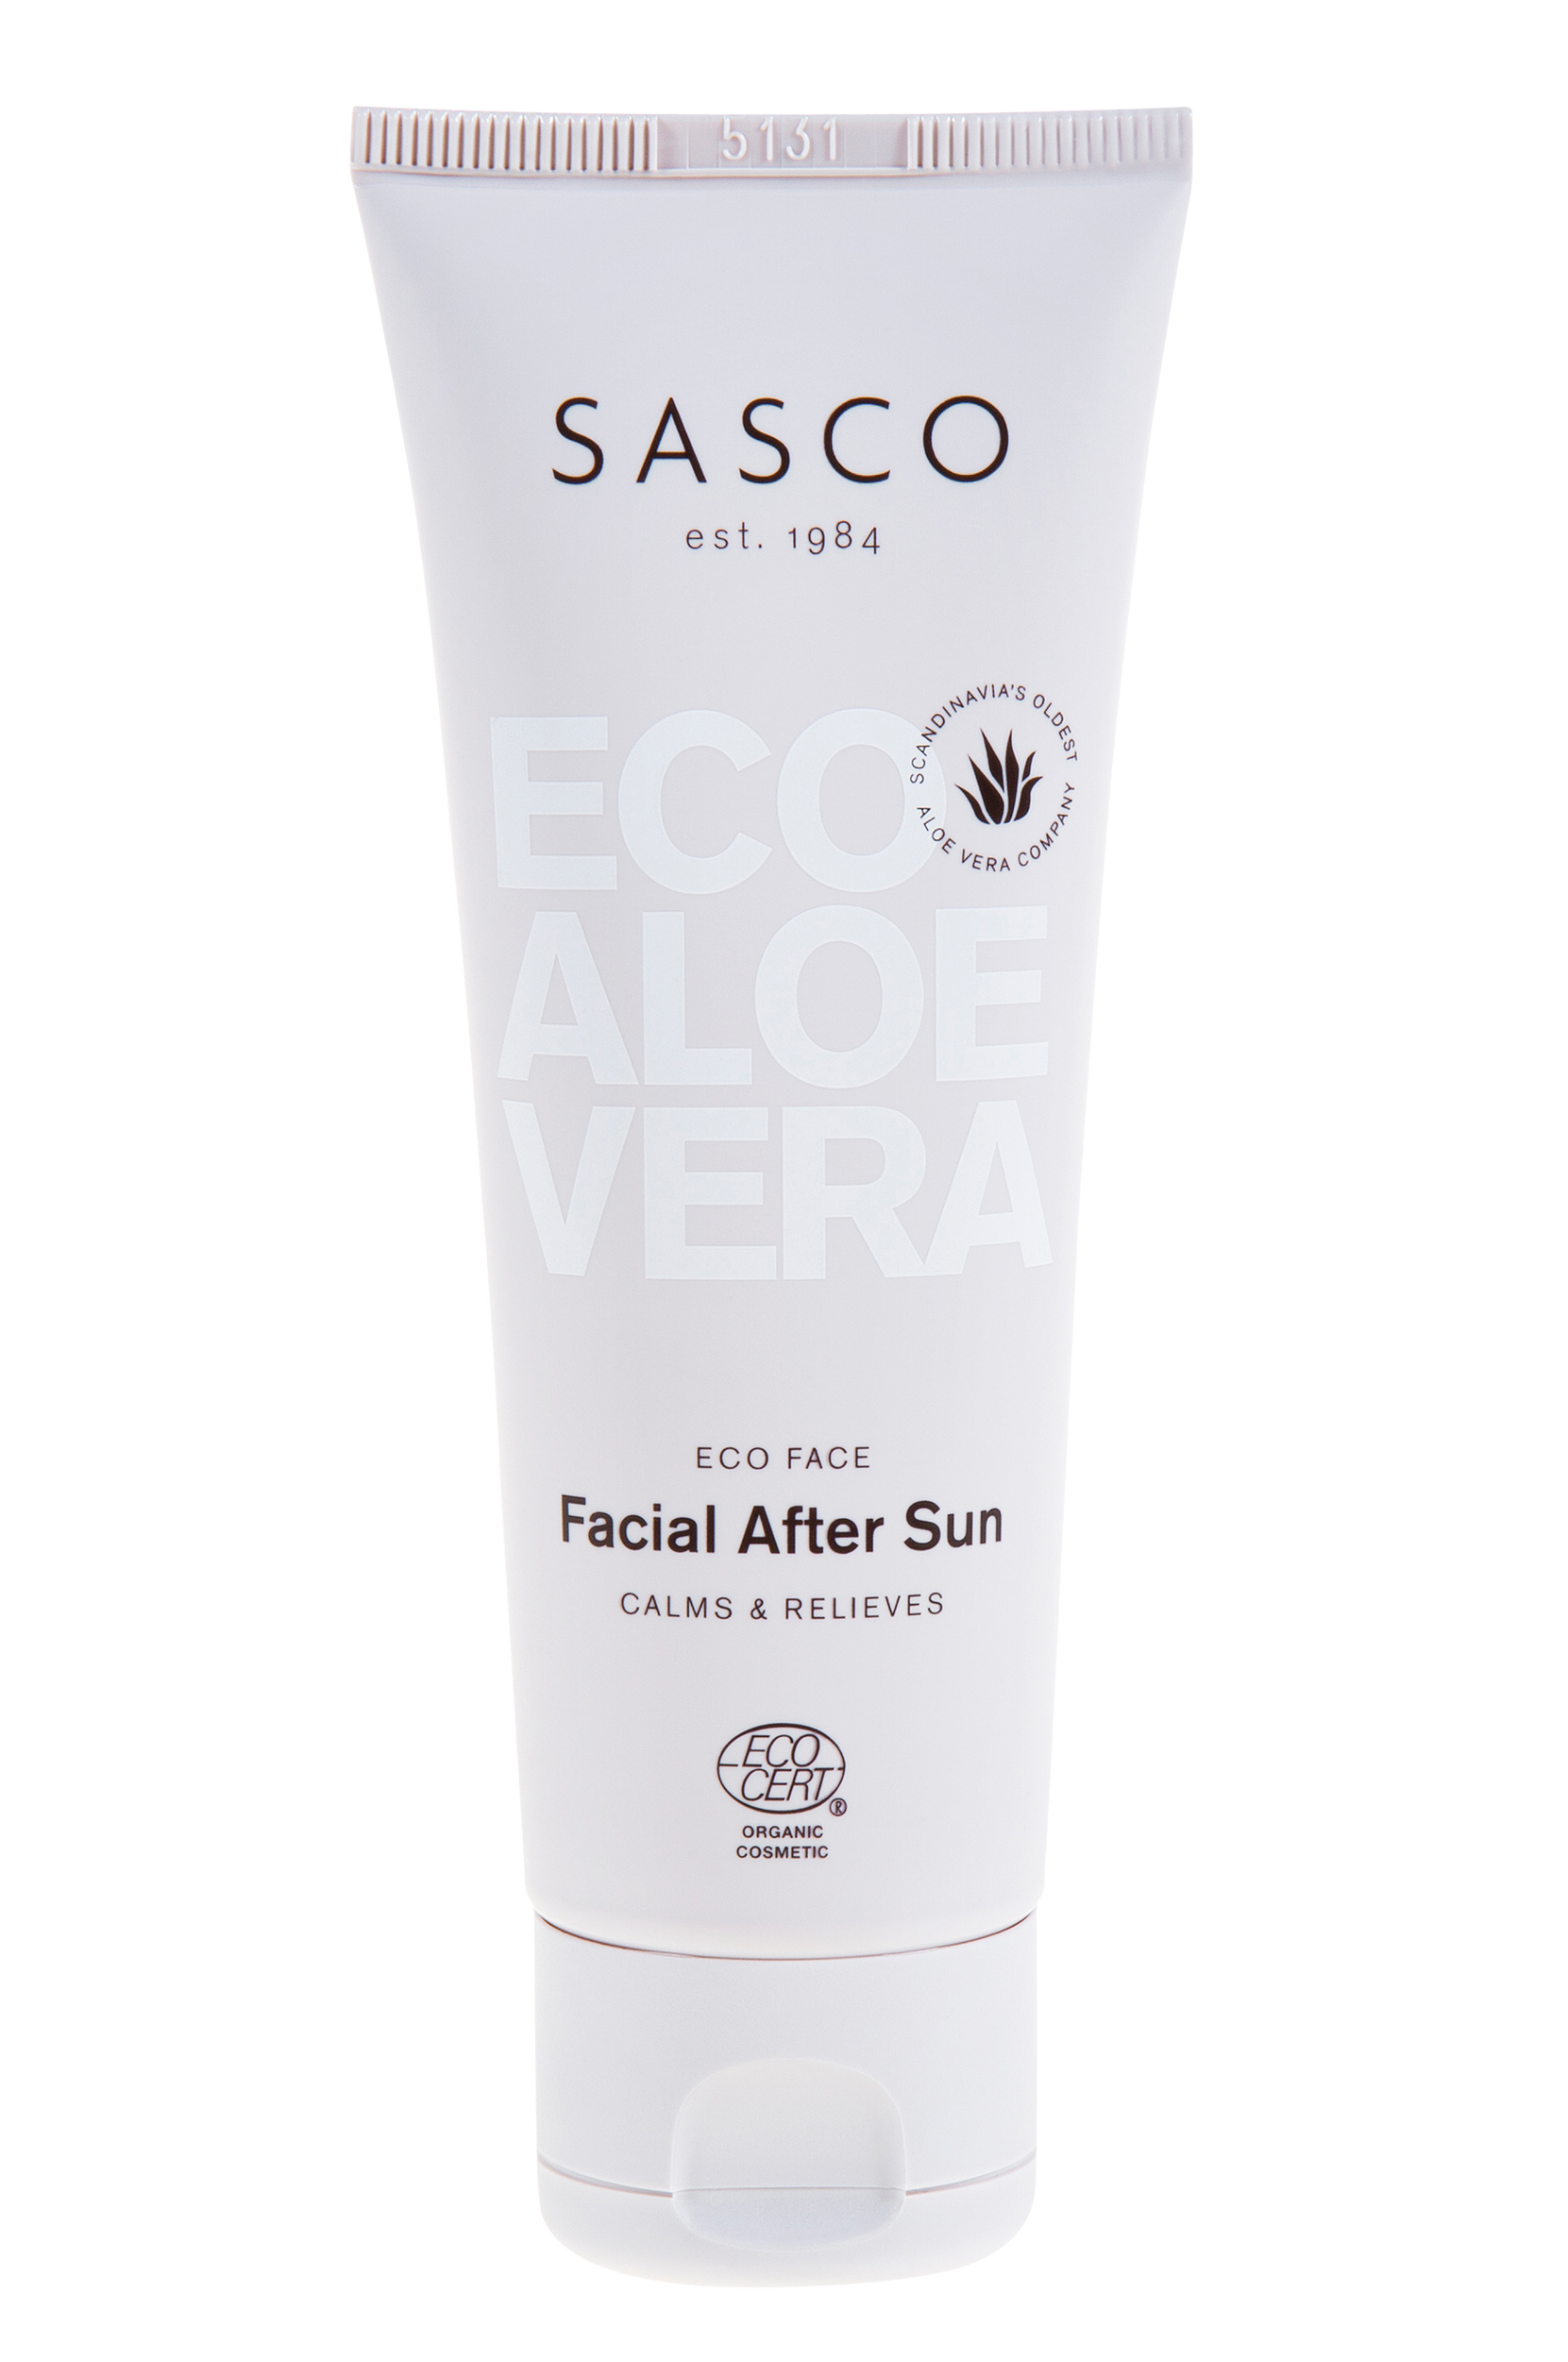 Eco Face Facial After Sun